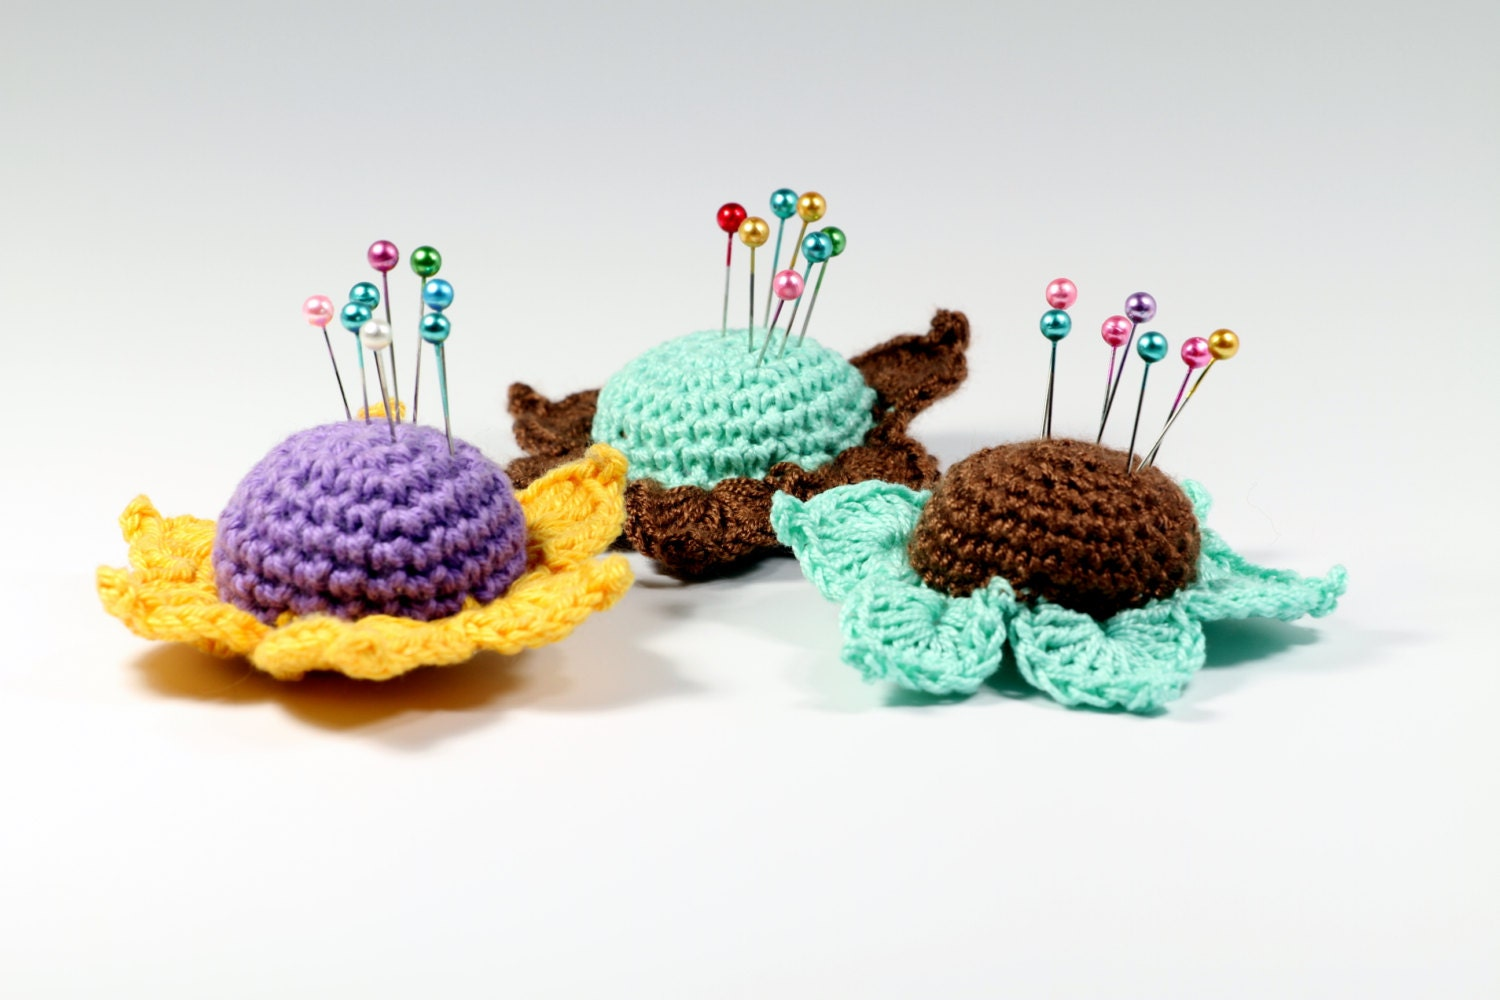 Crochet Flower Pincushion Pattern : Crochet Pattern Flower Pincushion Pincushion PDF by etty2504